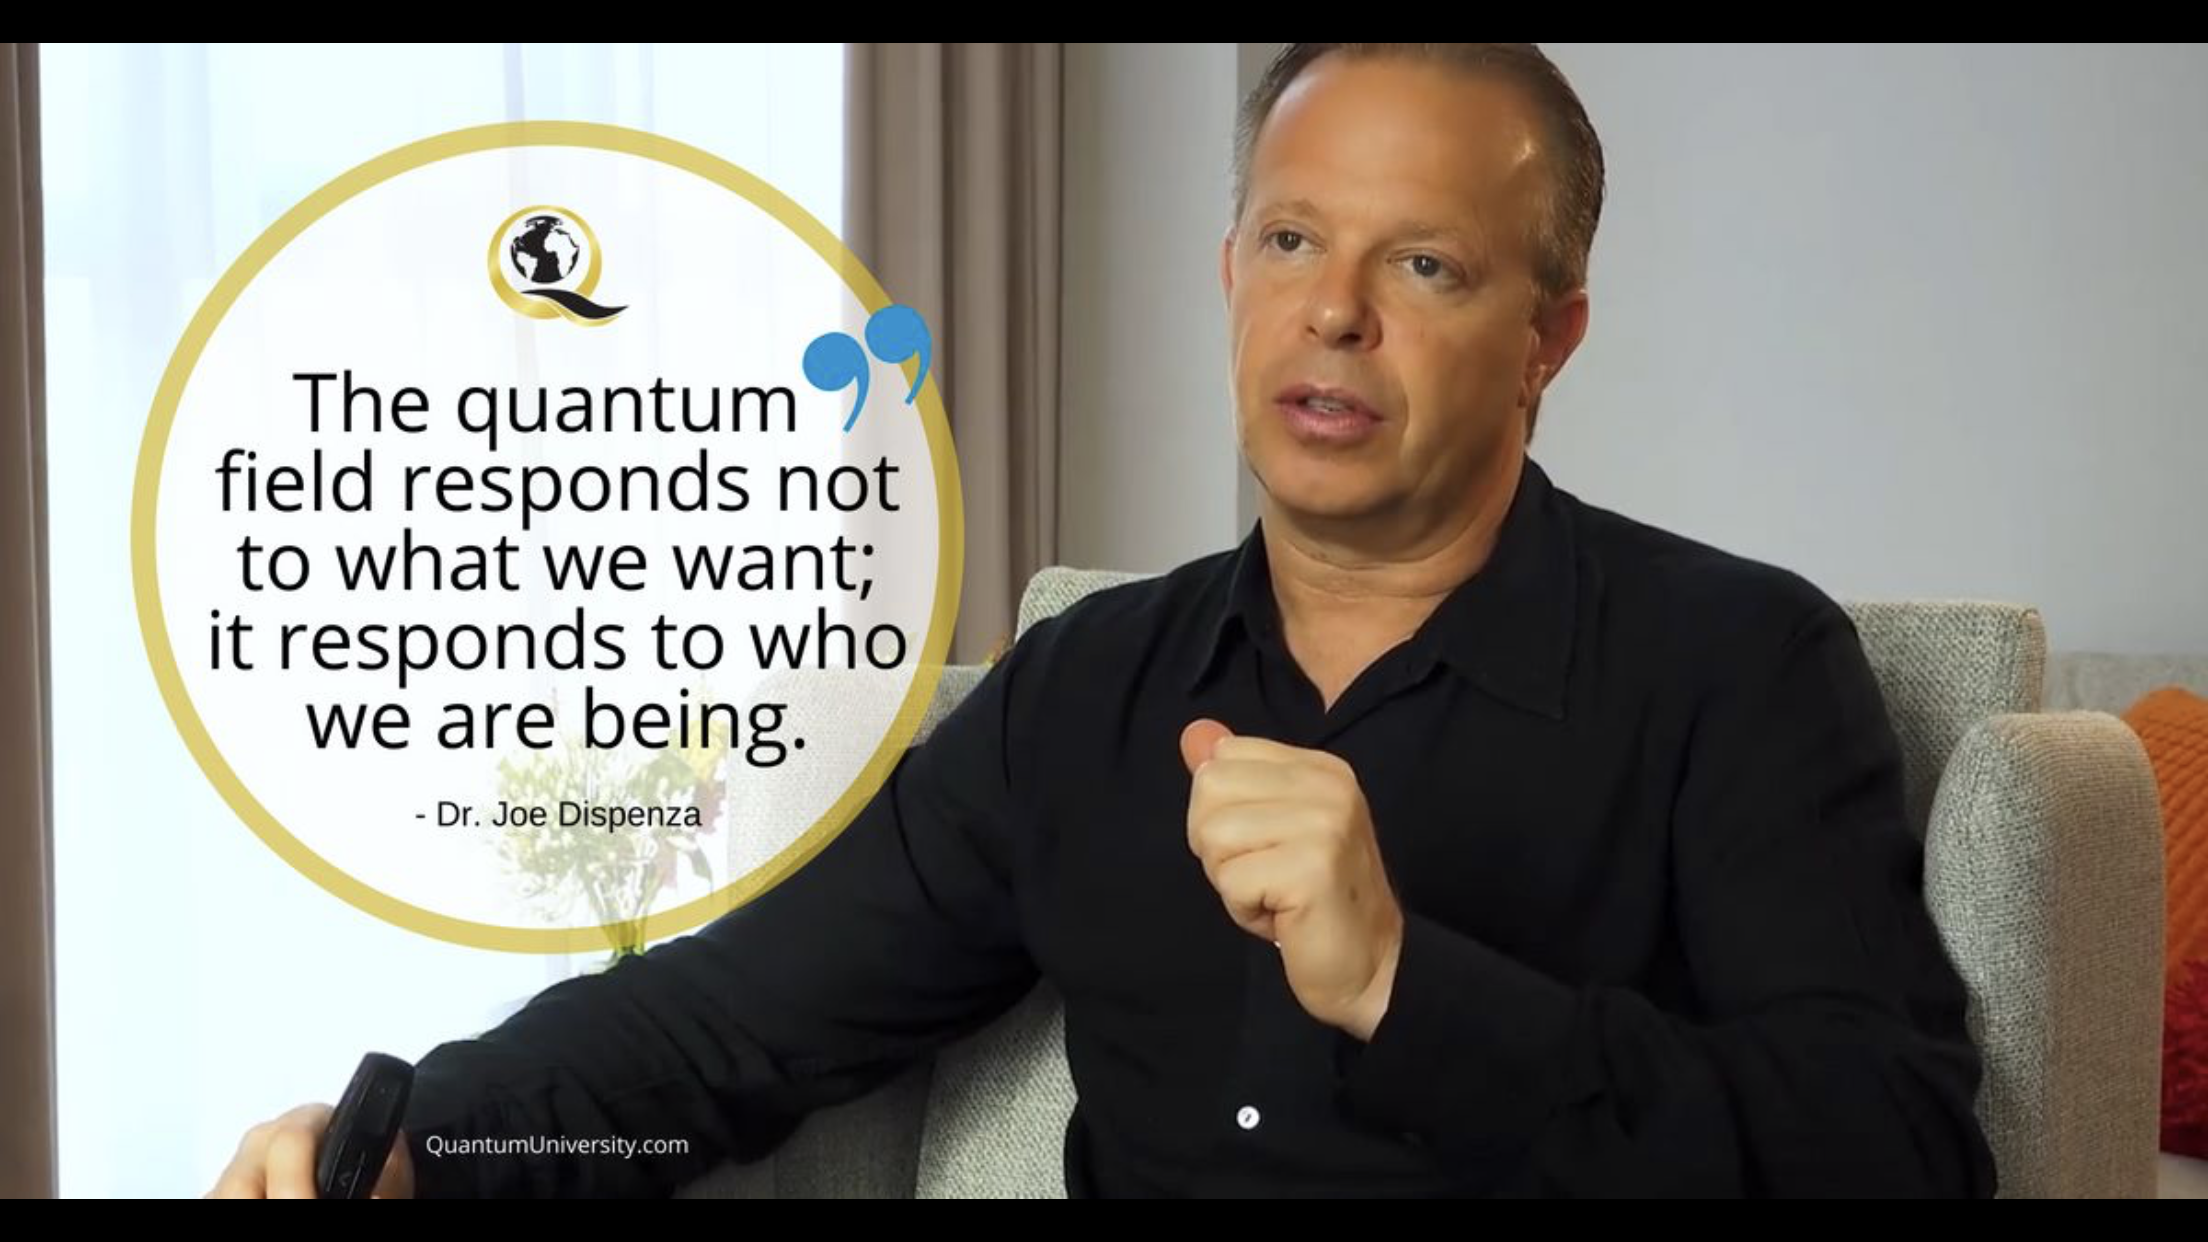 https://quantumsobriety.com/who-are-you-being/